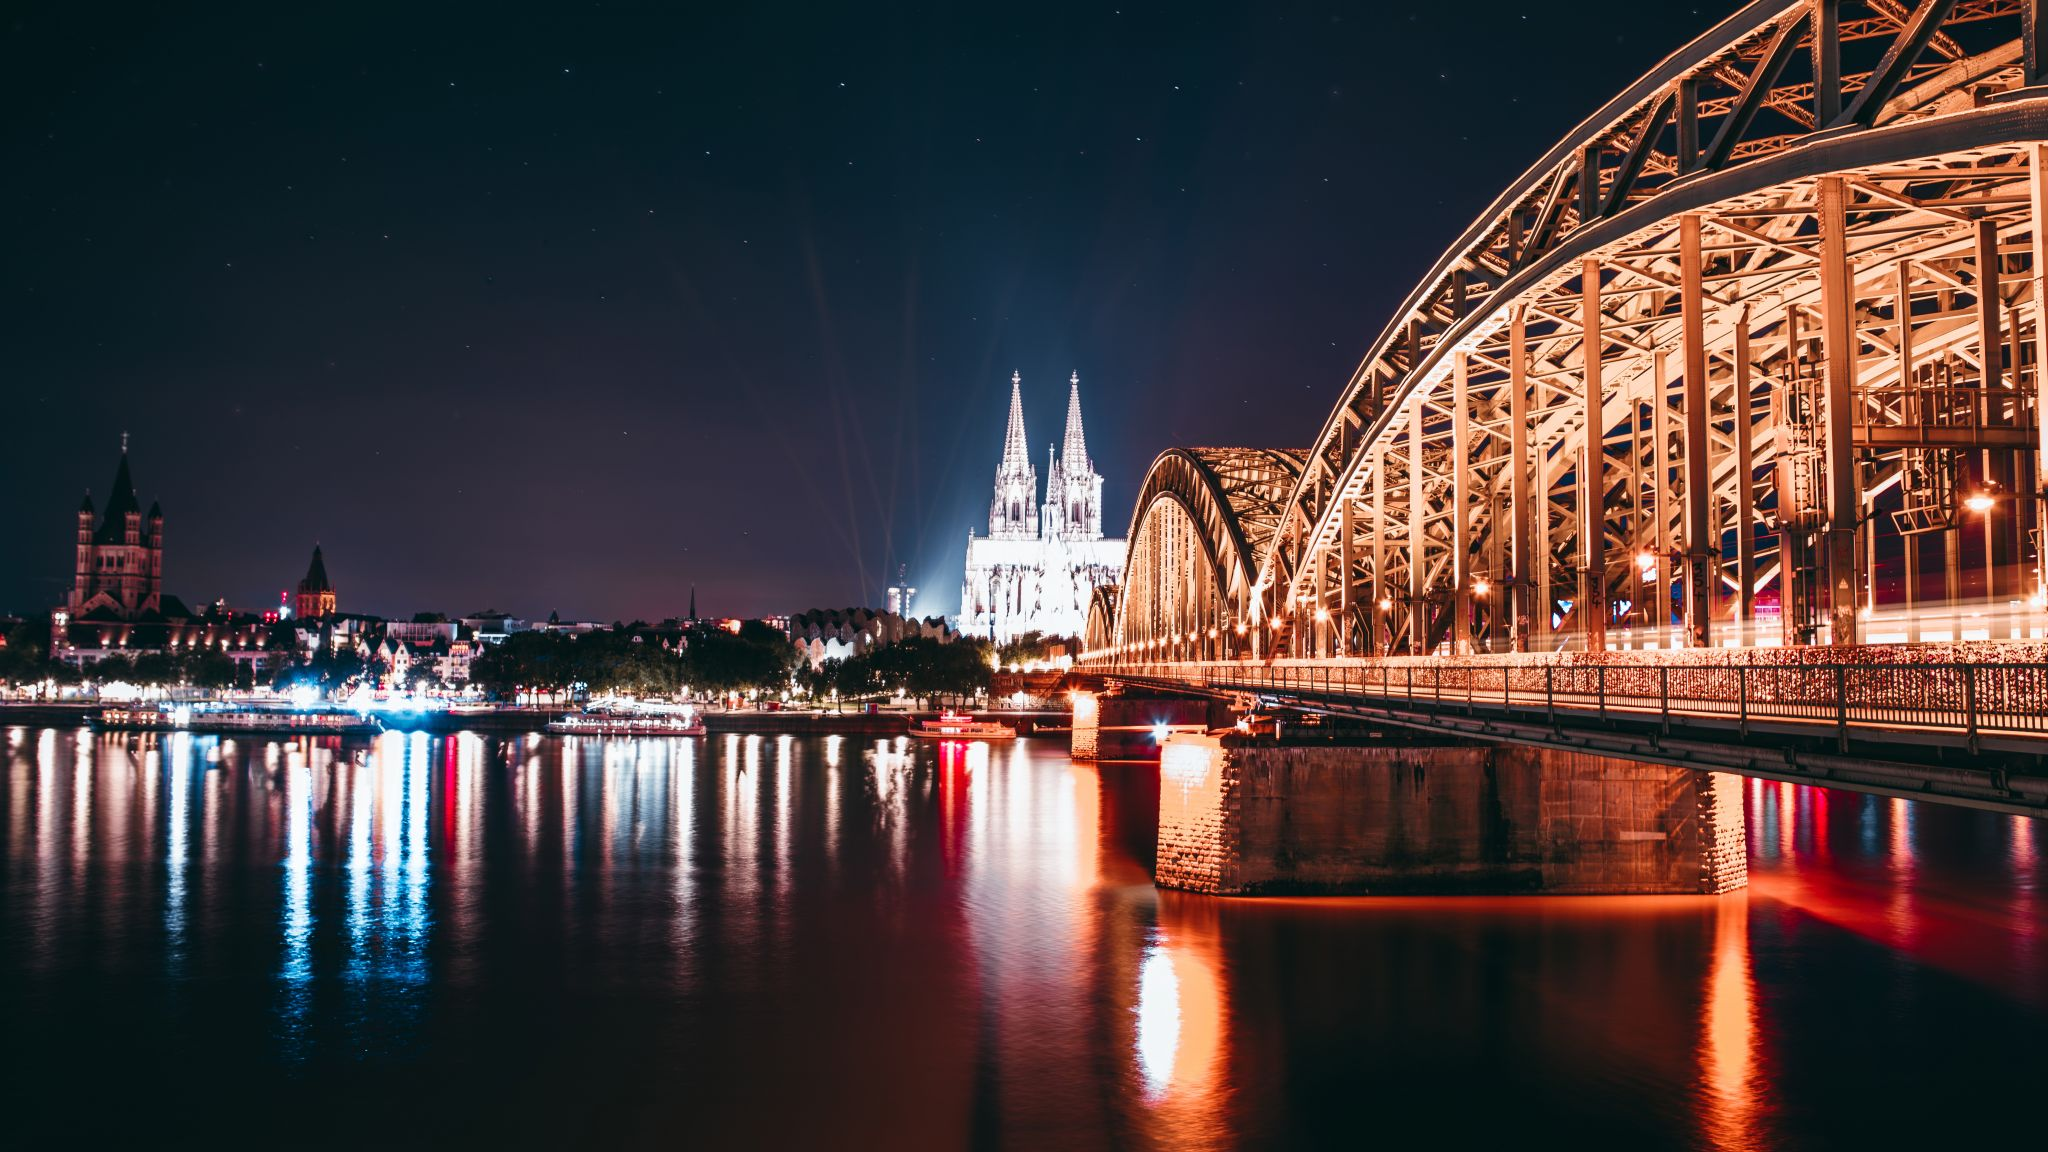 the most classic spot in cologne, Germany